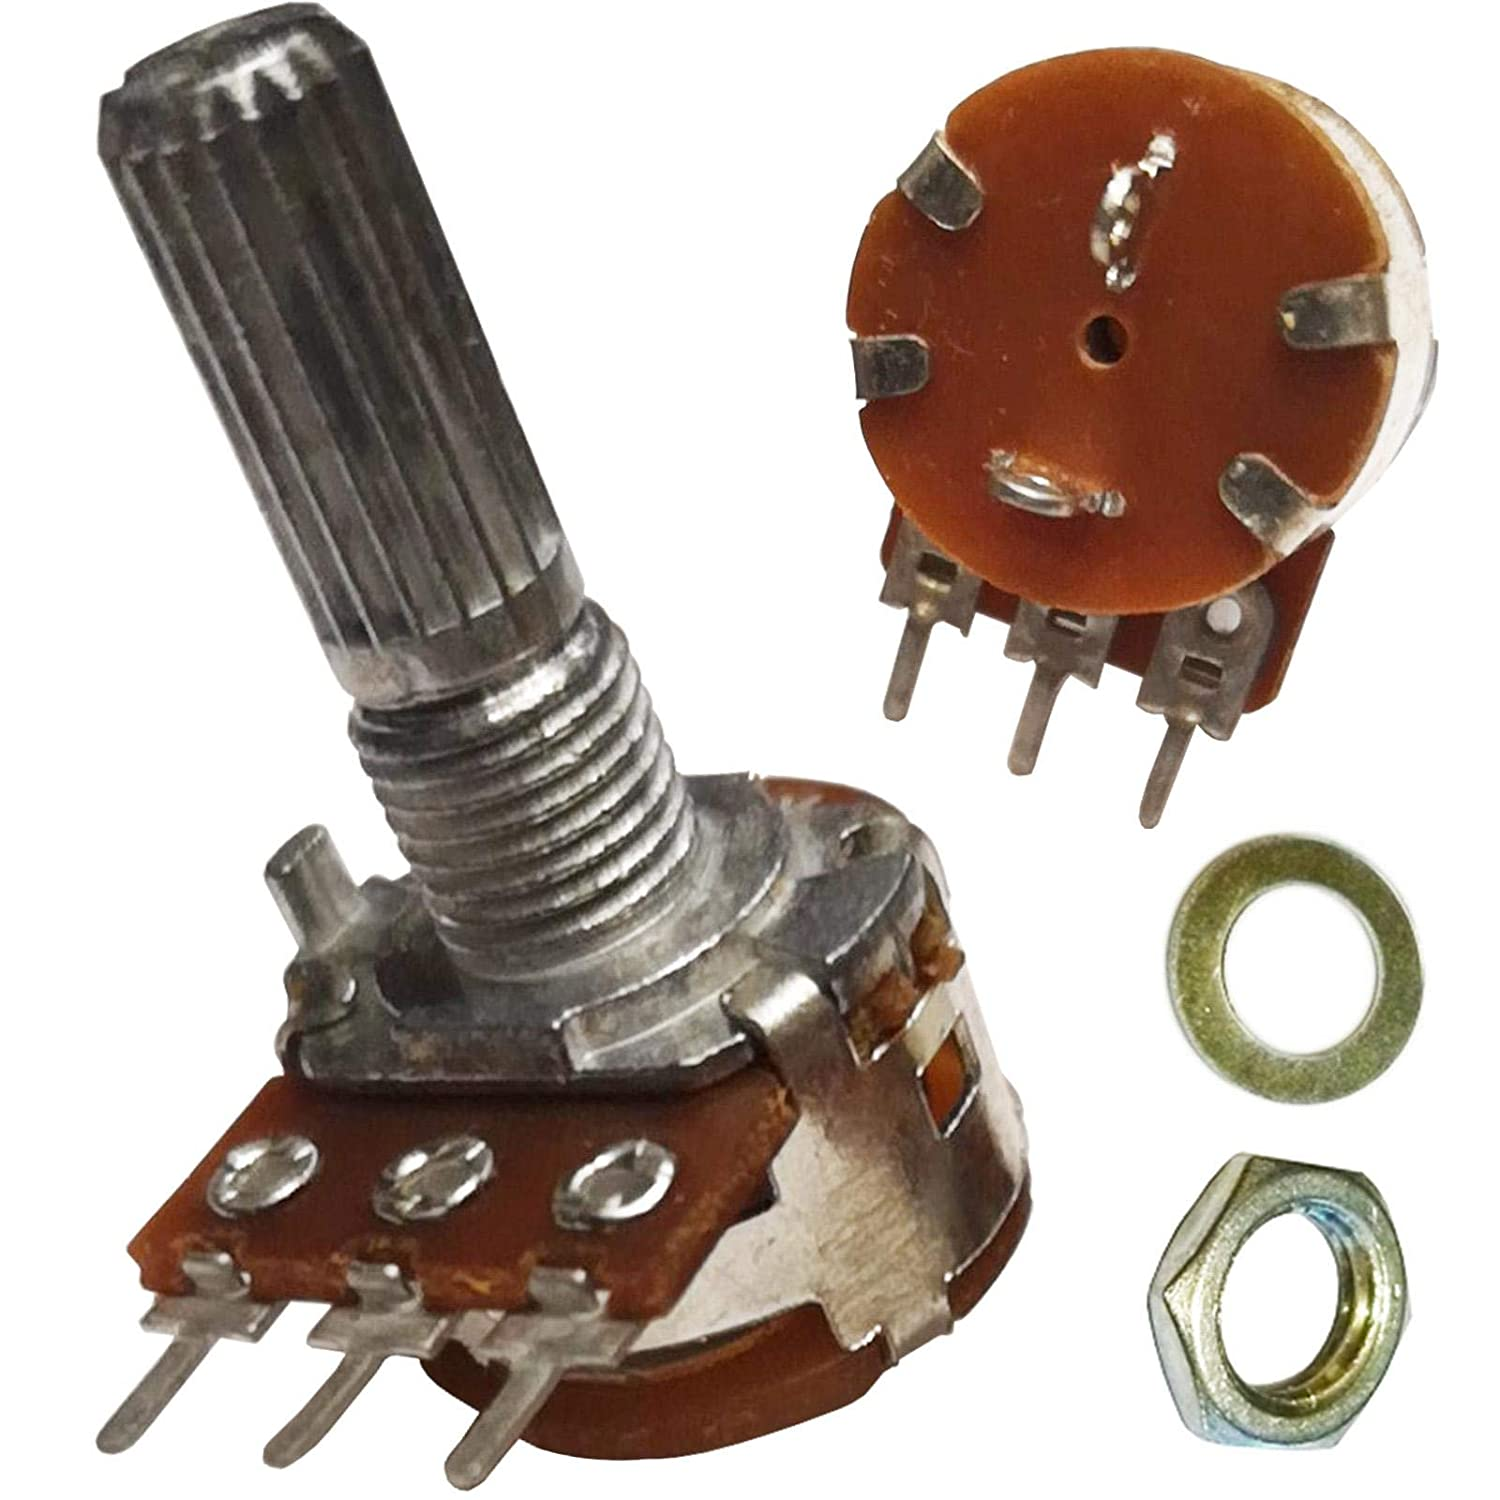 A100K ohm with SPST Switch 100K ohm A104 Single Mono Logarithmic Log Knurled Splined Shaft Rotary Potentiometer Pot Shaft:20mm Unbranded/Generic